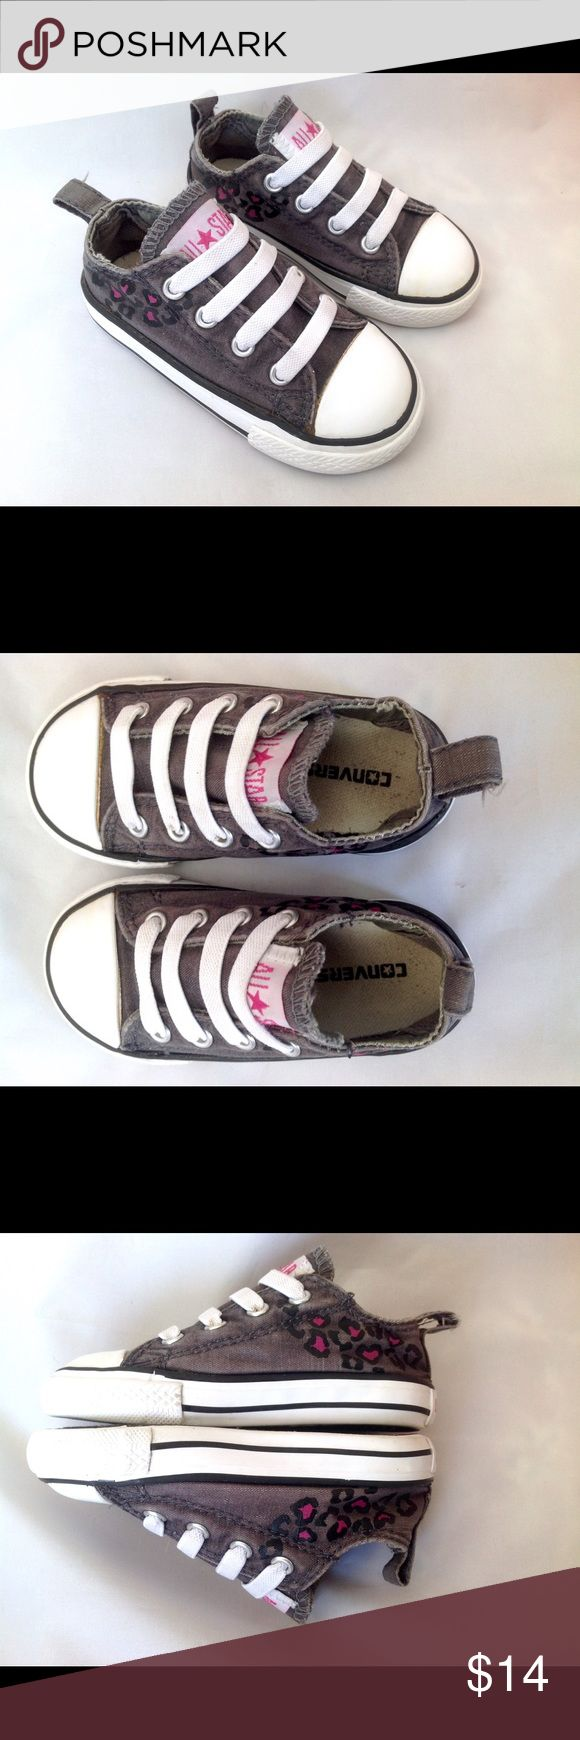 Toddler Converse All Star Low with Elastic Laces Gray with Pink Animal Print on Sides. Elastic Laces allow shoe to slip on and not come untied. Tag says Infant Size 6 Converse Shoes Sneakers